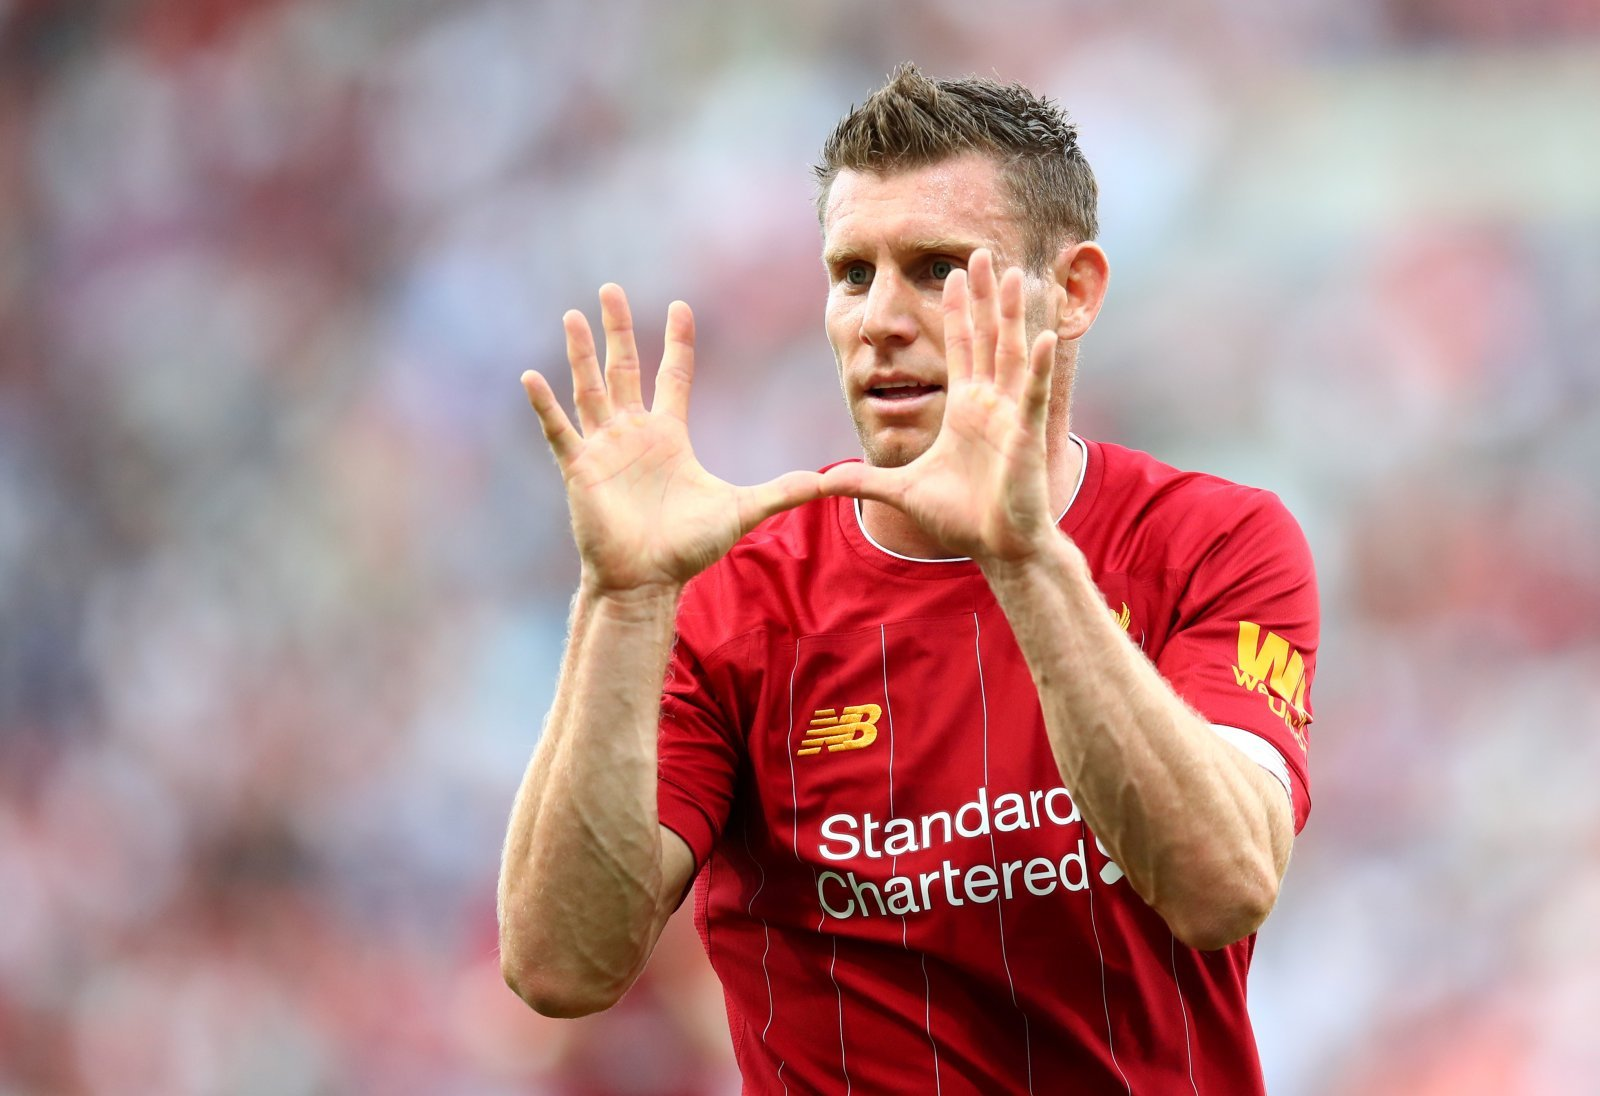 Liverpool: These fans react to tweet about possible coaching role for James Milner